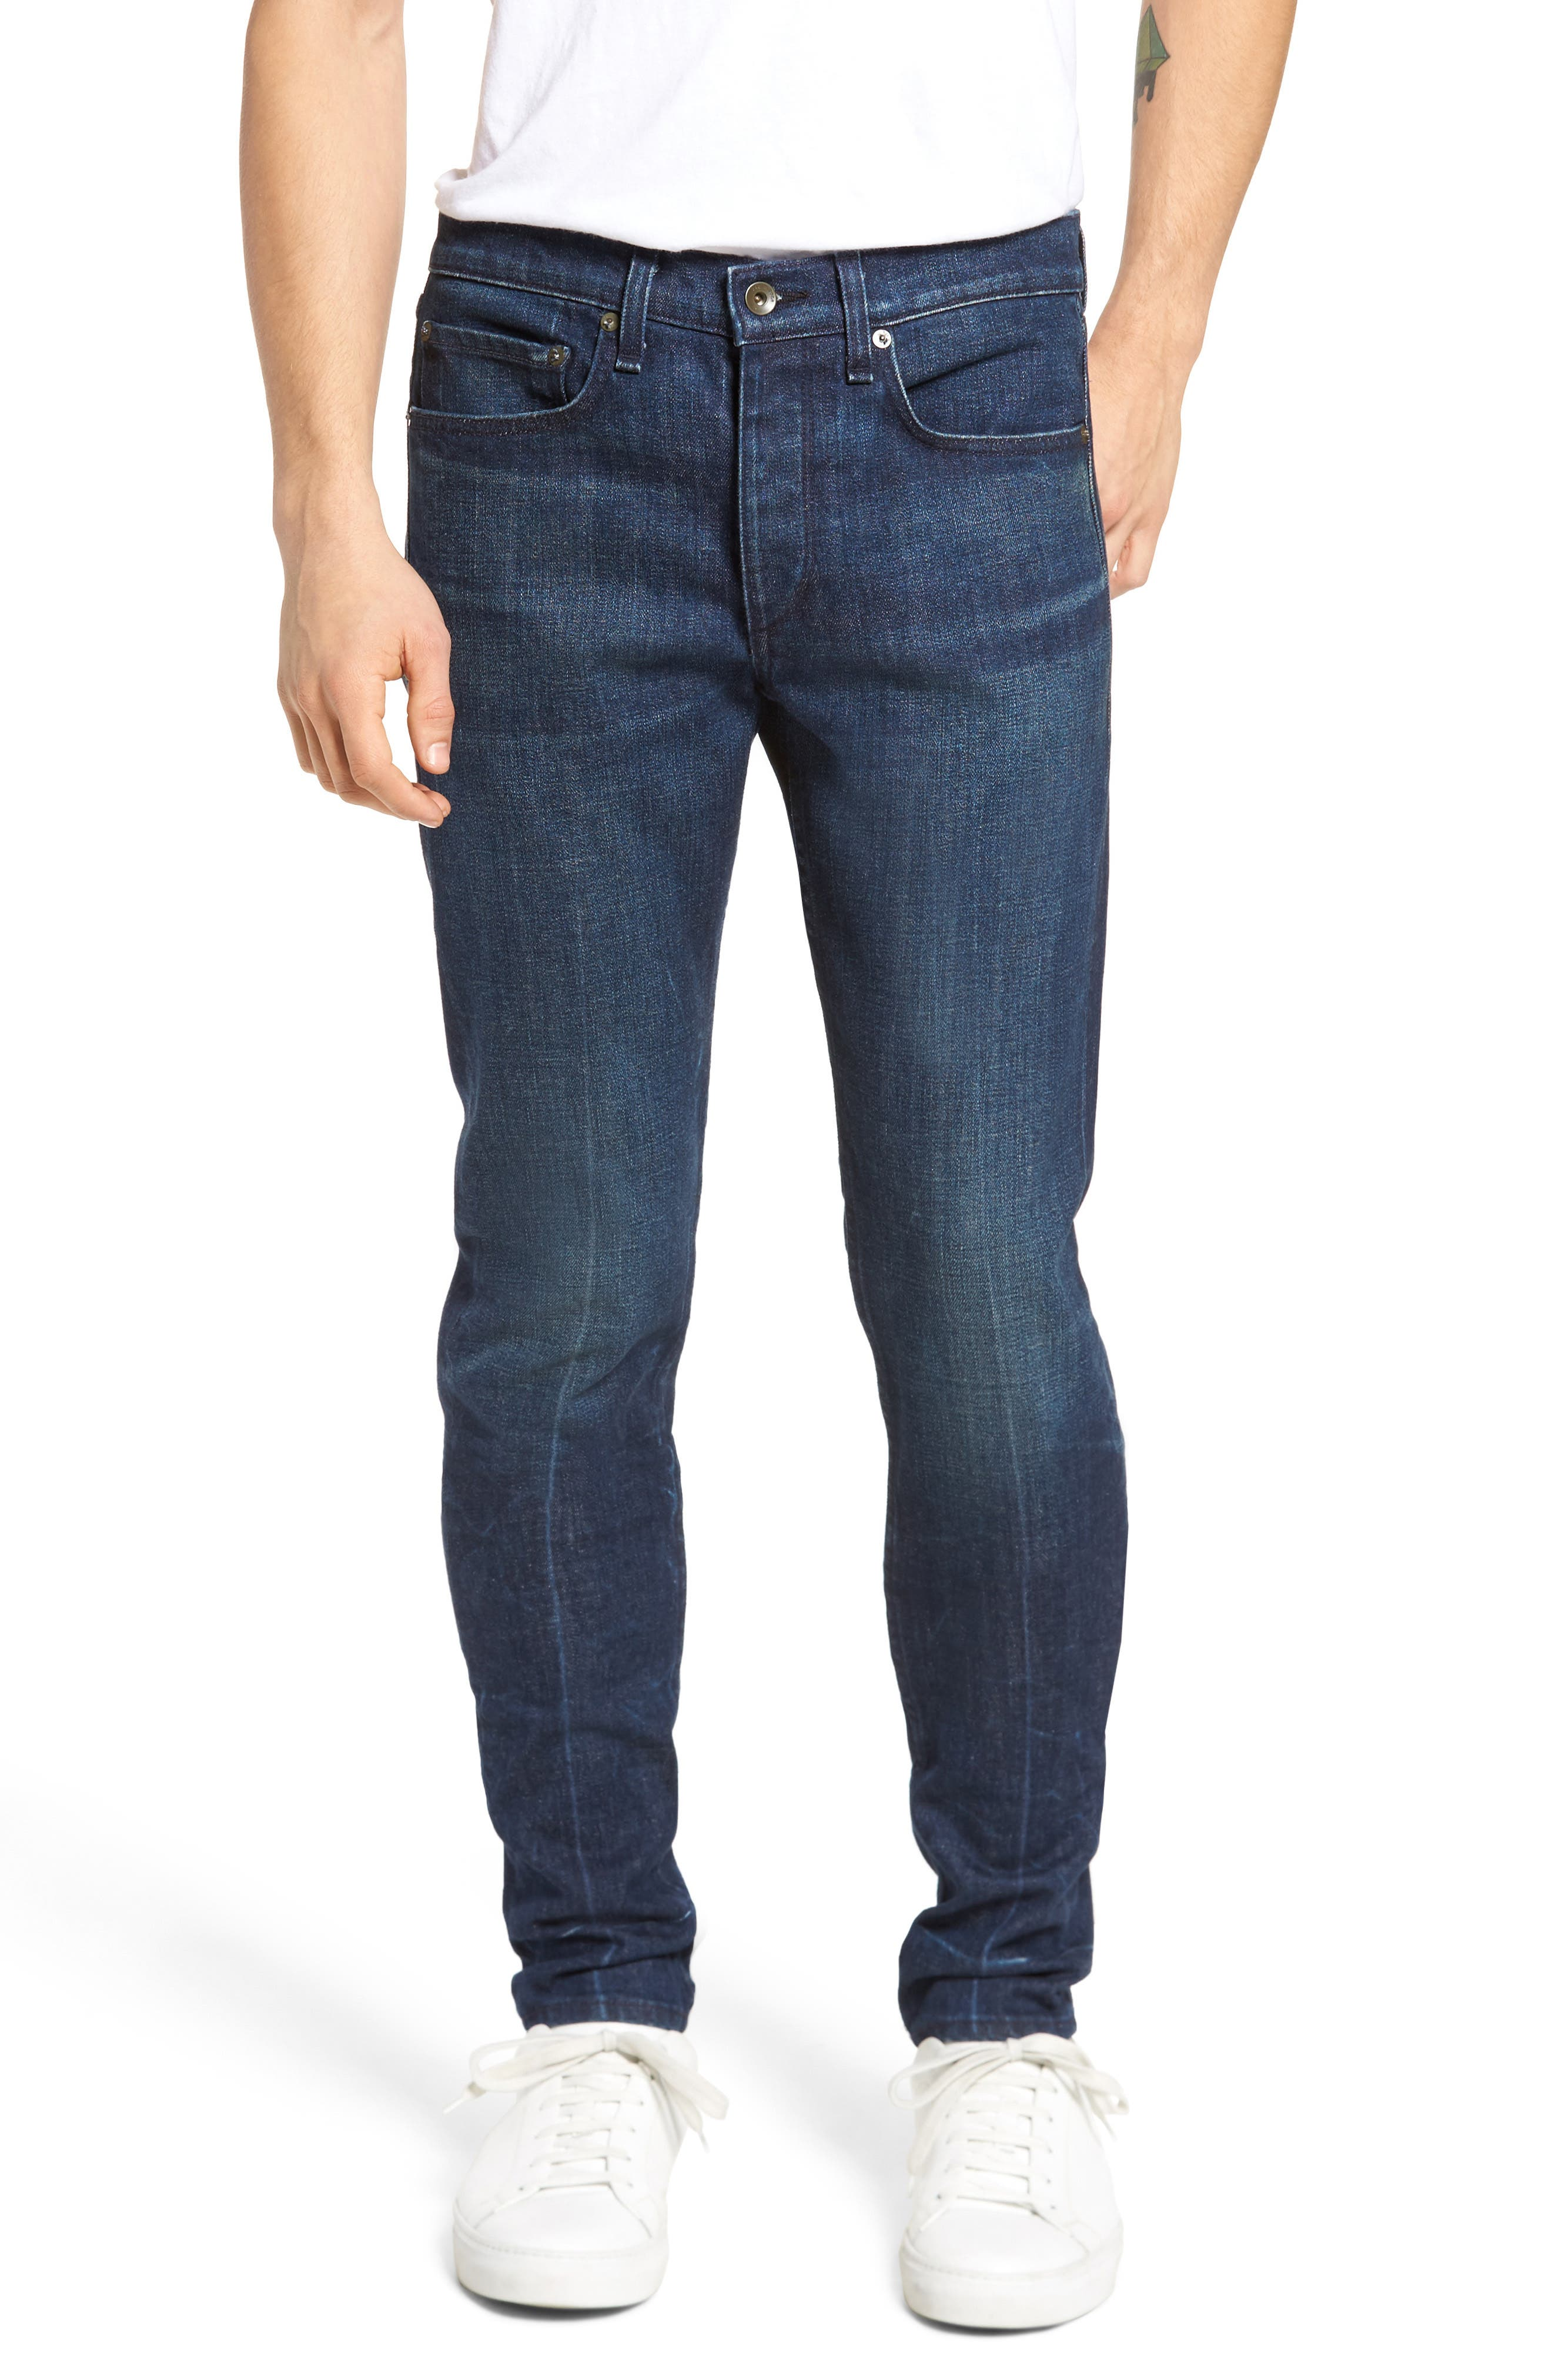 Fit 1 Skinny Fit Jeans,                             Main thumbnail 1, color,                             402